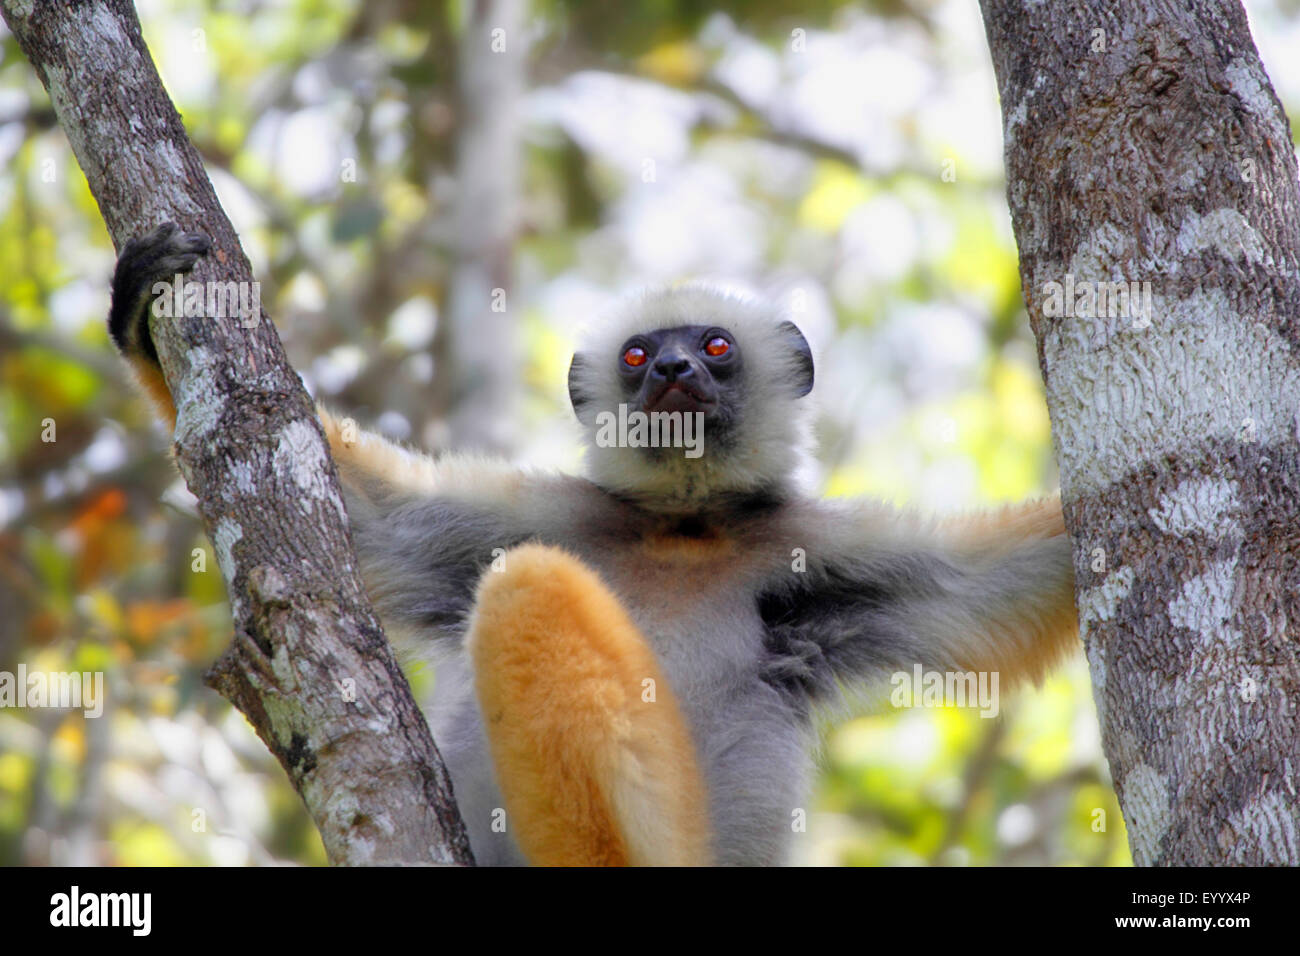 diadem sifaka, diademed sifaka (Propithecus diadema), is sitting on a fork of a branch, Madagascar, Analamazaotra - Stock Image